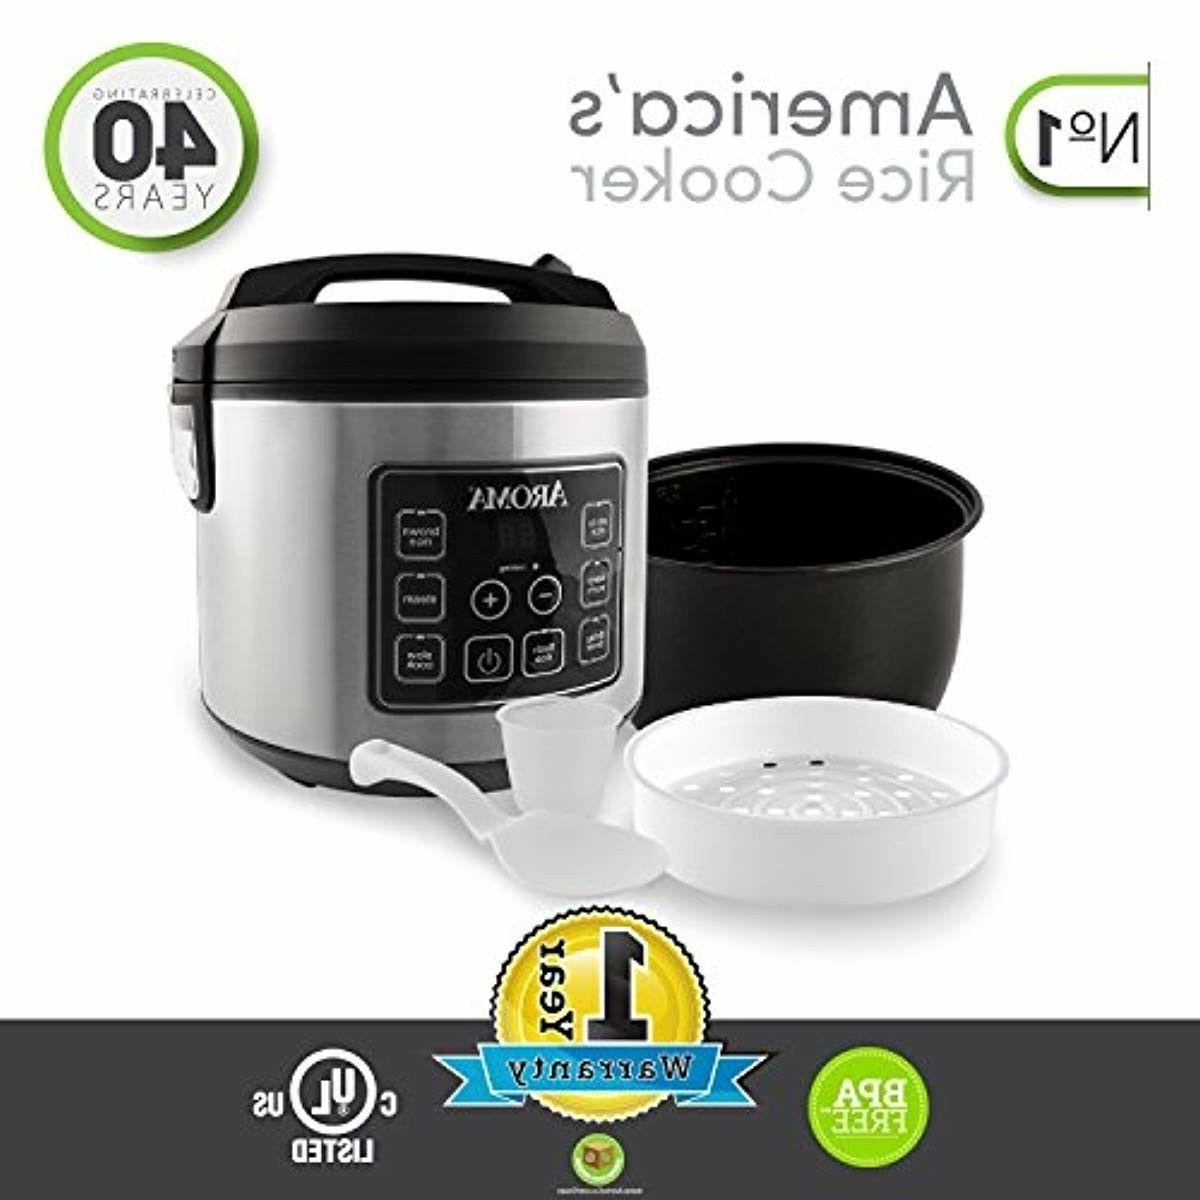 Aroma Housewares 20 Cooked Rice Cooker, Slow